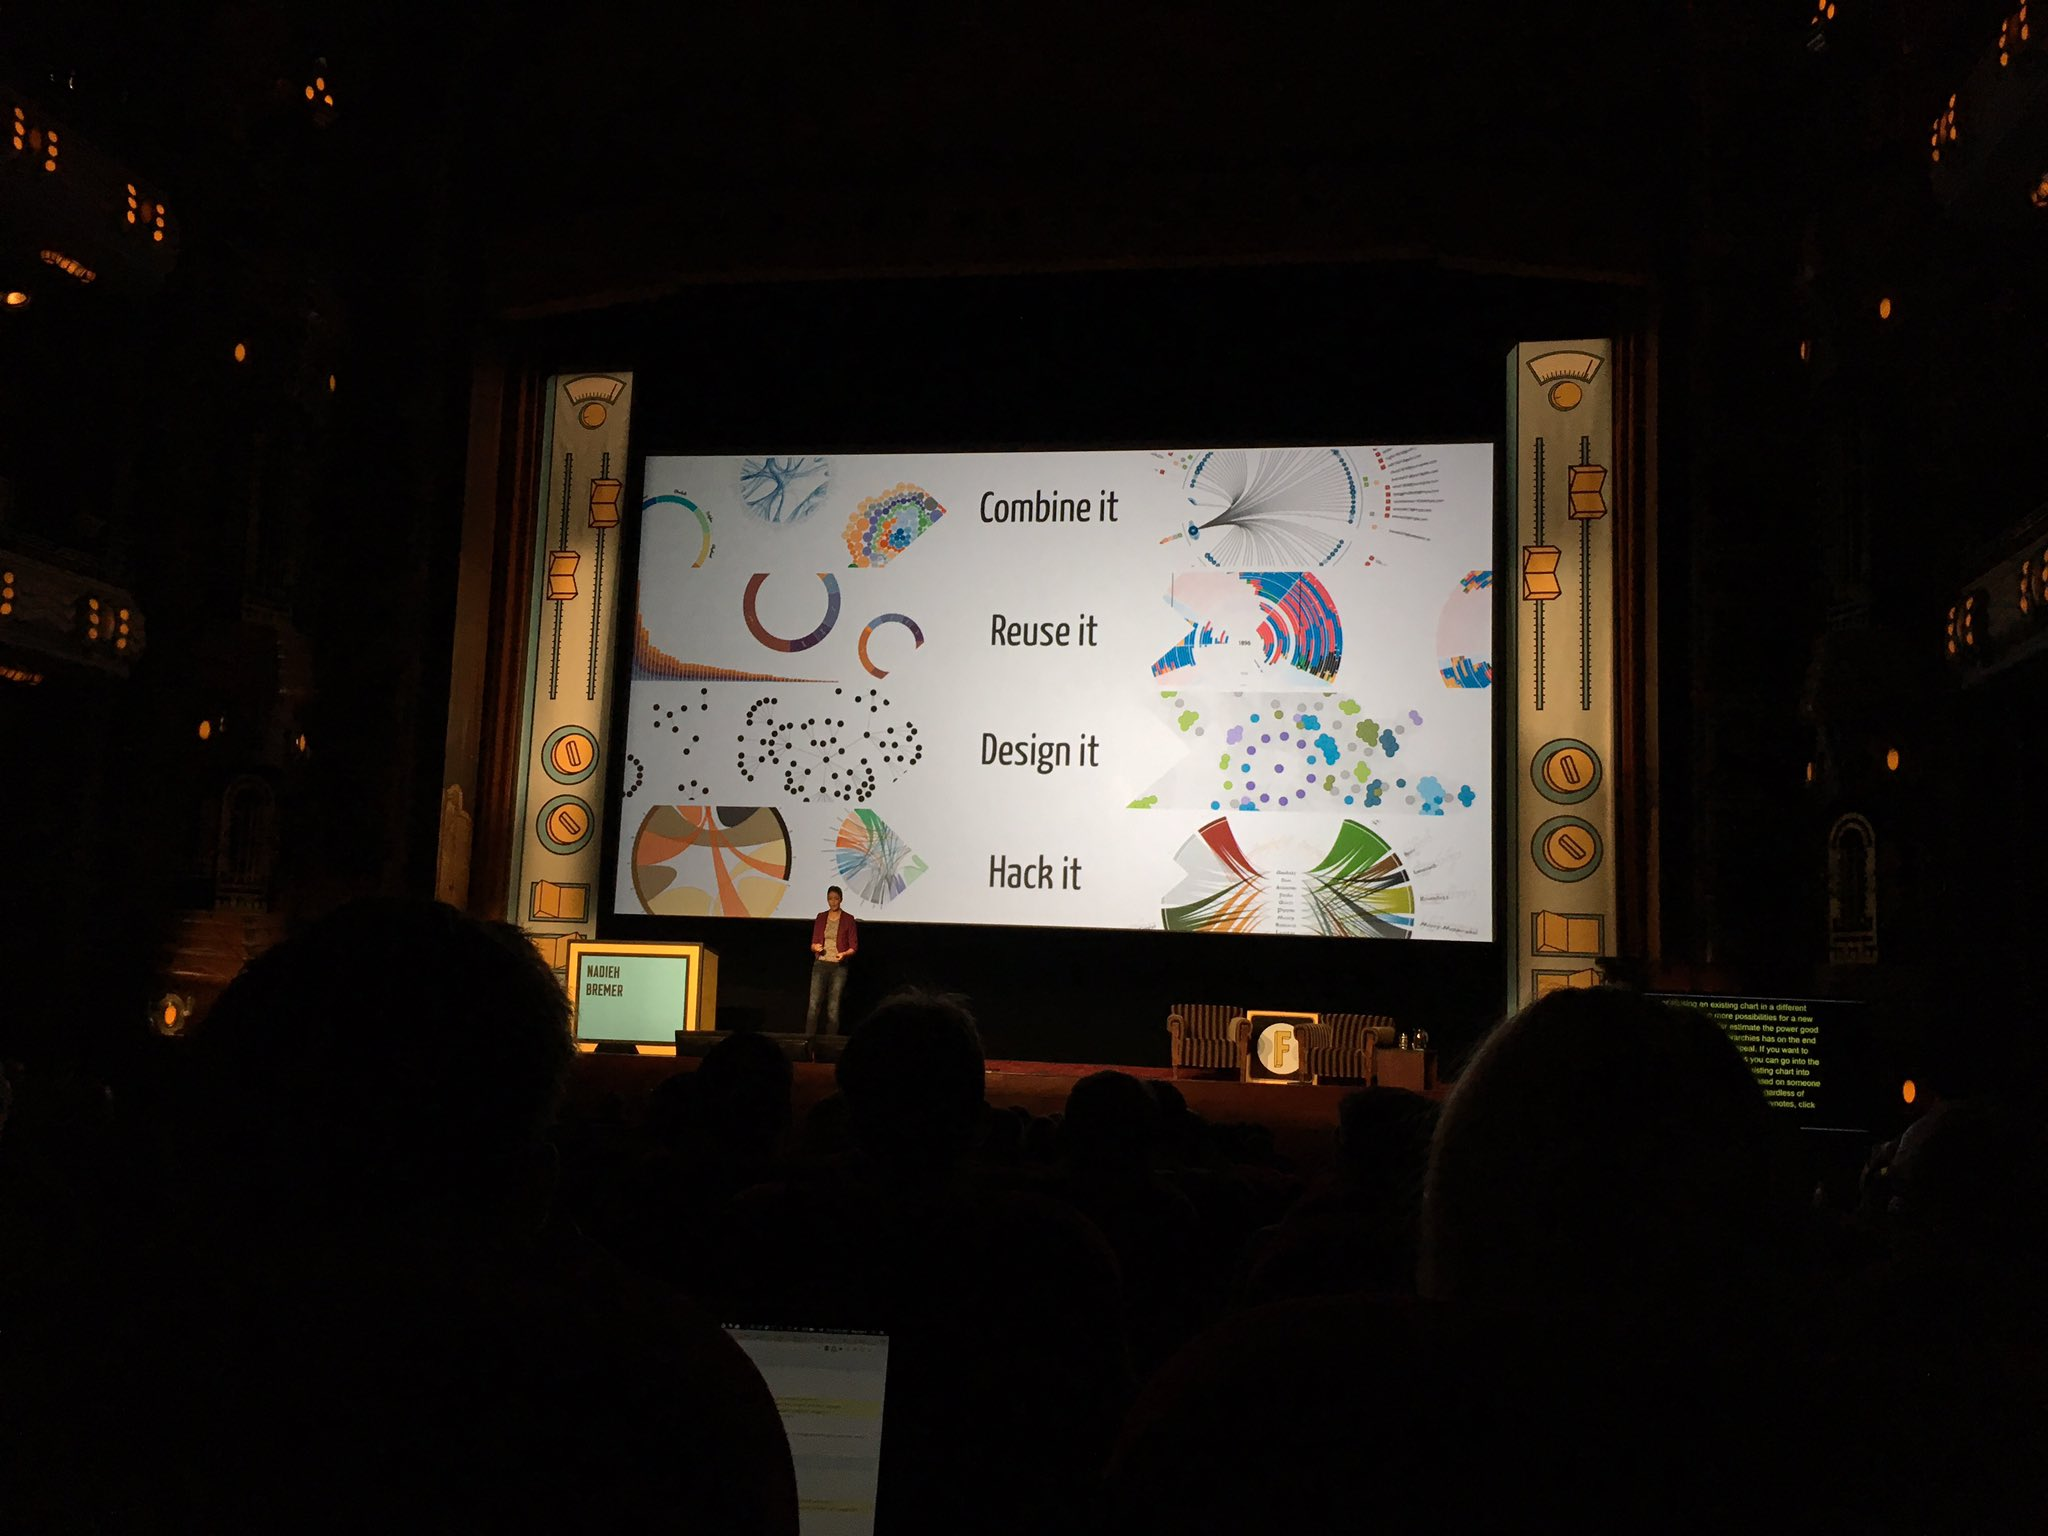 That was an amazing talk by @NadiehBremer on how to do dataviz properly! #fronteers https://t.co/PmS3g9DUNT